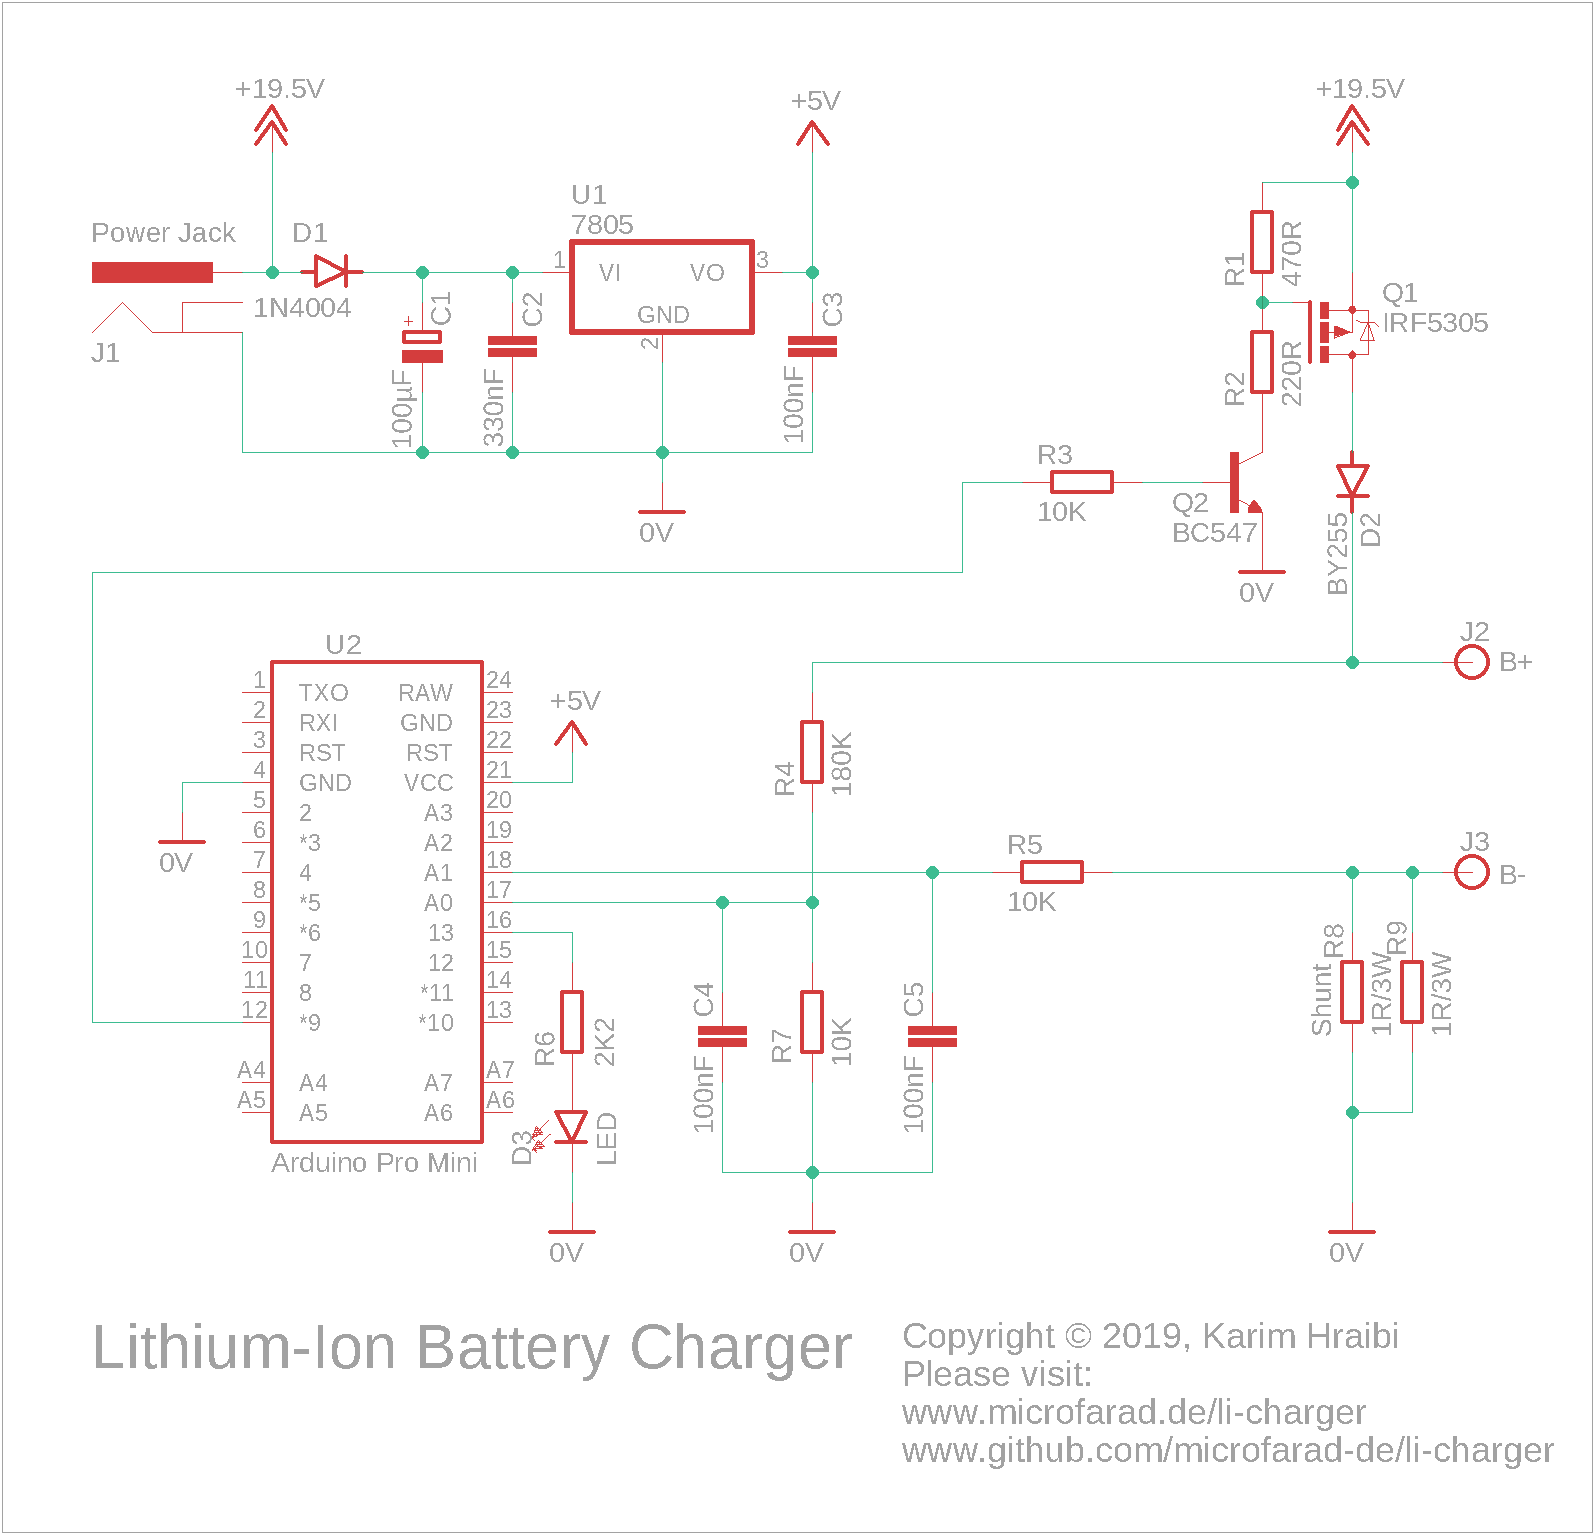 build a lithium ion battery charger on arduino μf schumacher se-5212a wiring-diagram general battery charger wiring diagram #10